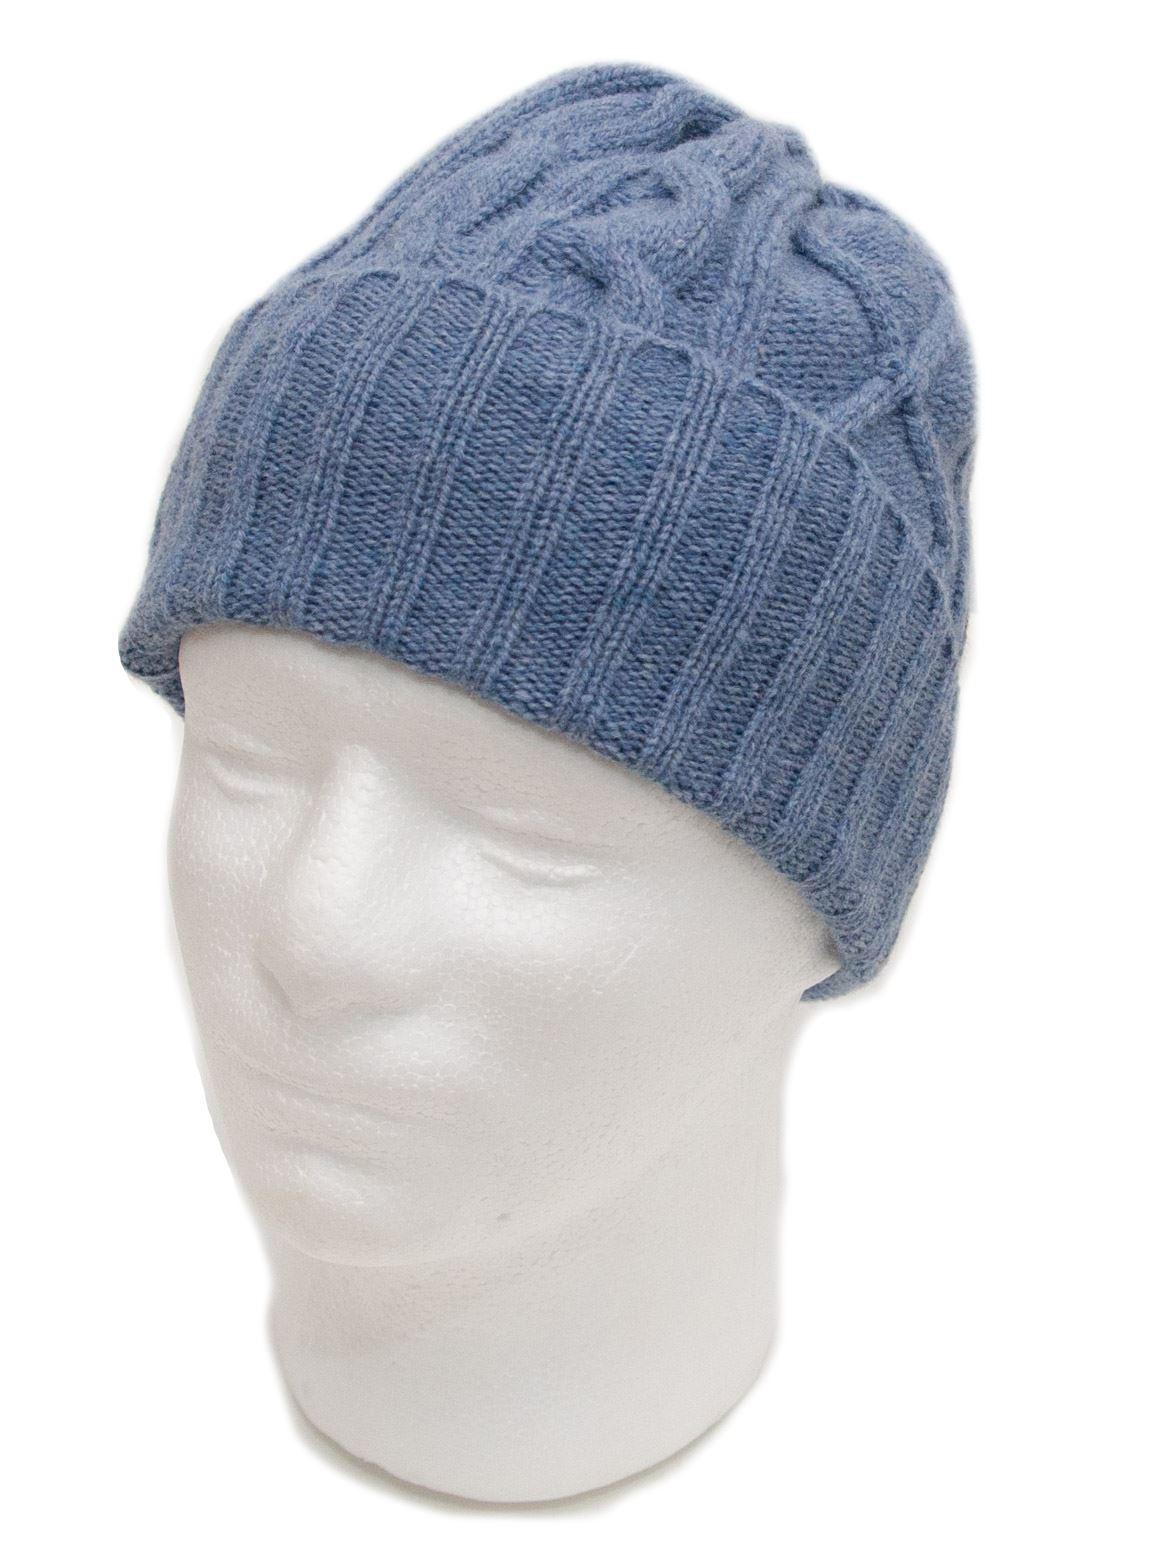 c69e1719833 Lambswool-Cable-Knit-Beanie-Hat-Cream-Grey-Blue-